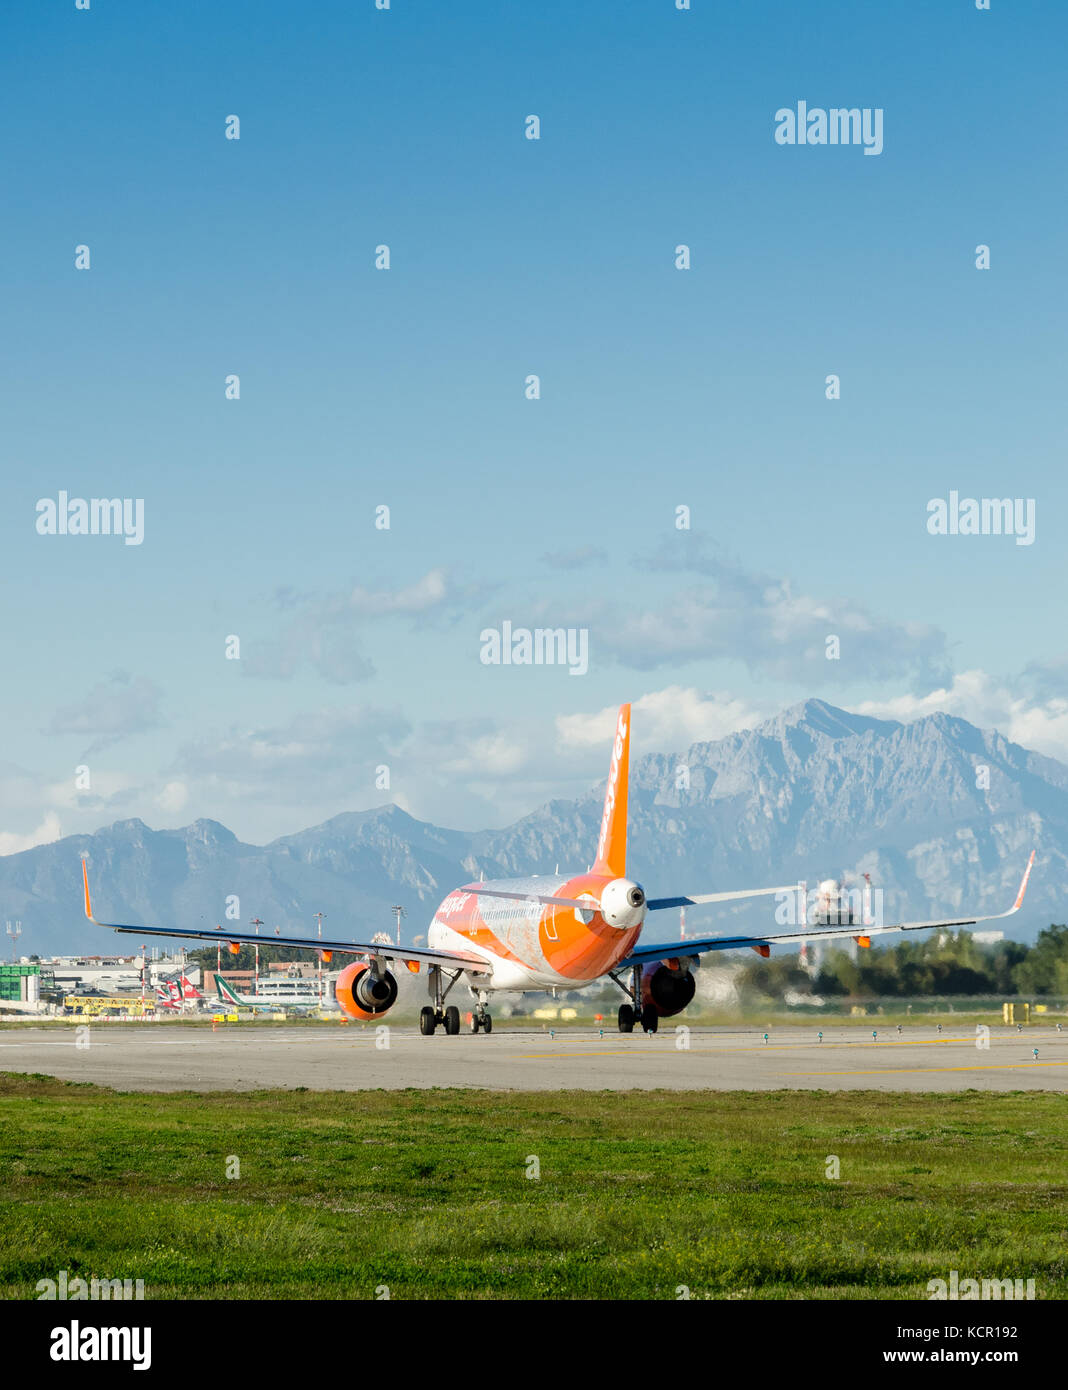 An Easyjet Airbus A320-214 taxiing at Milan's Linate Airport. The airplane is decorated to celebrate Easyjet's 20 Stock Photo